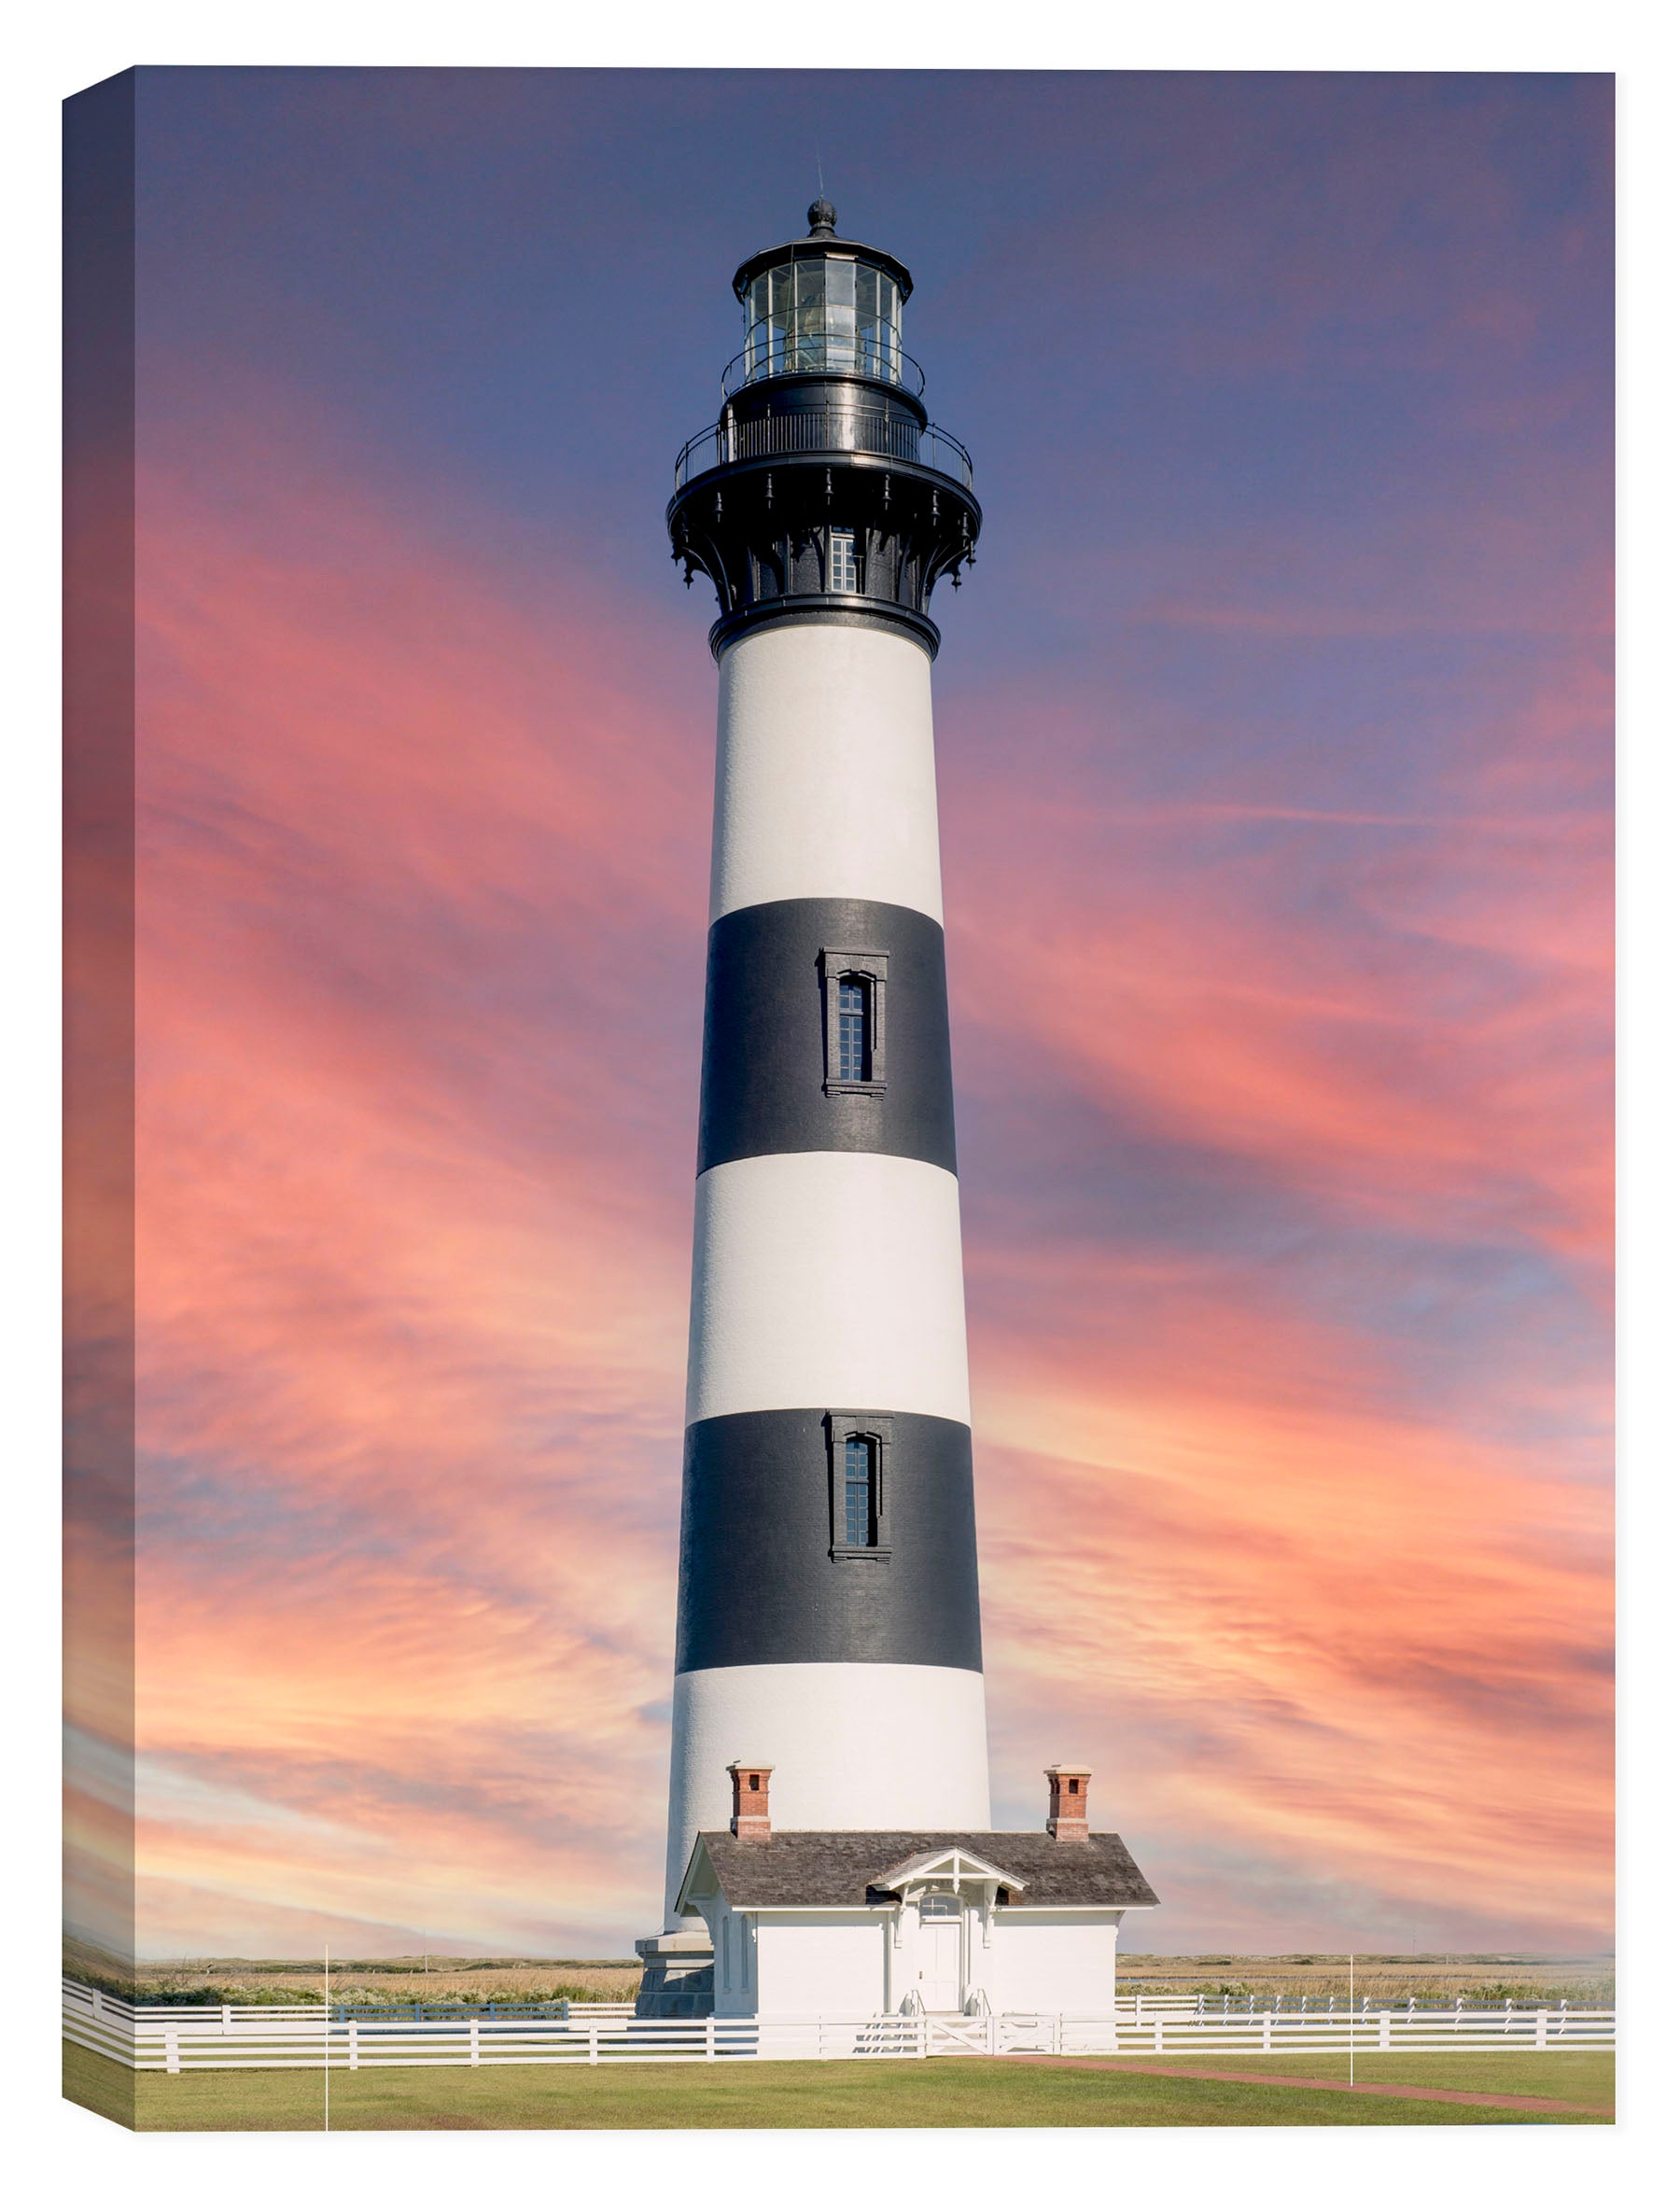 Bodie Island Lighthouse (Cape Hatteras) - Image on Canvas